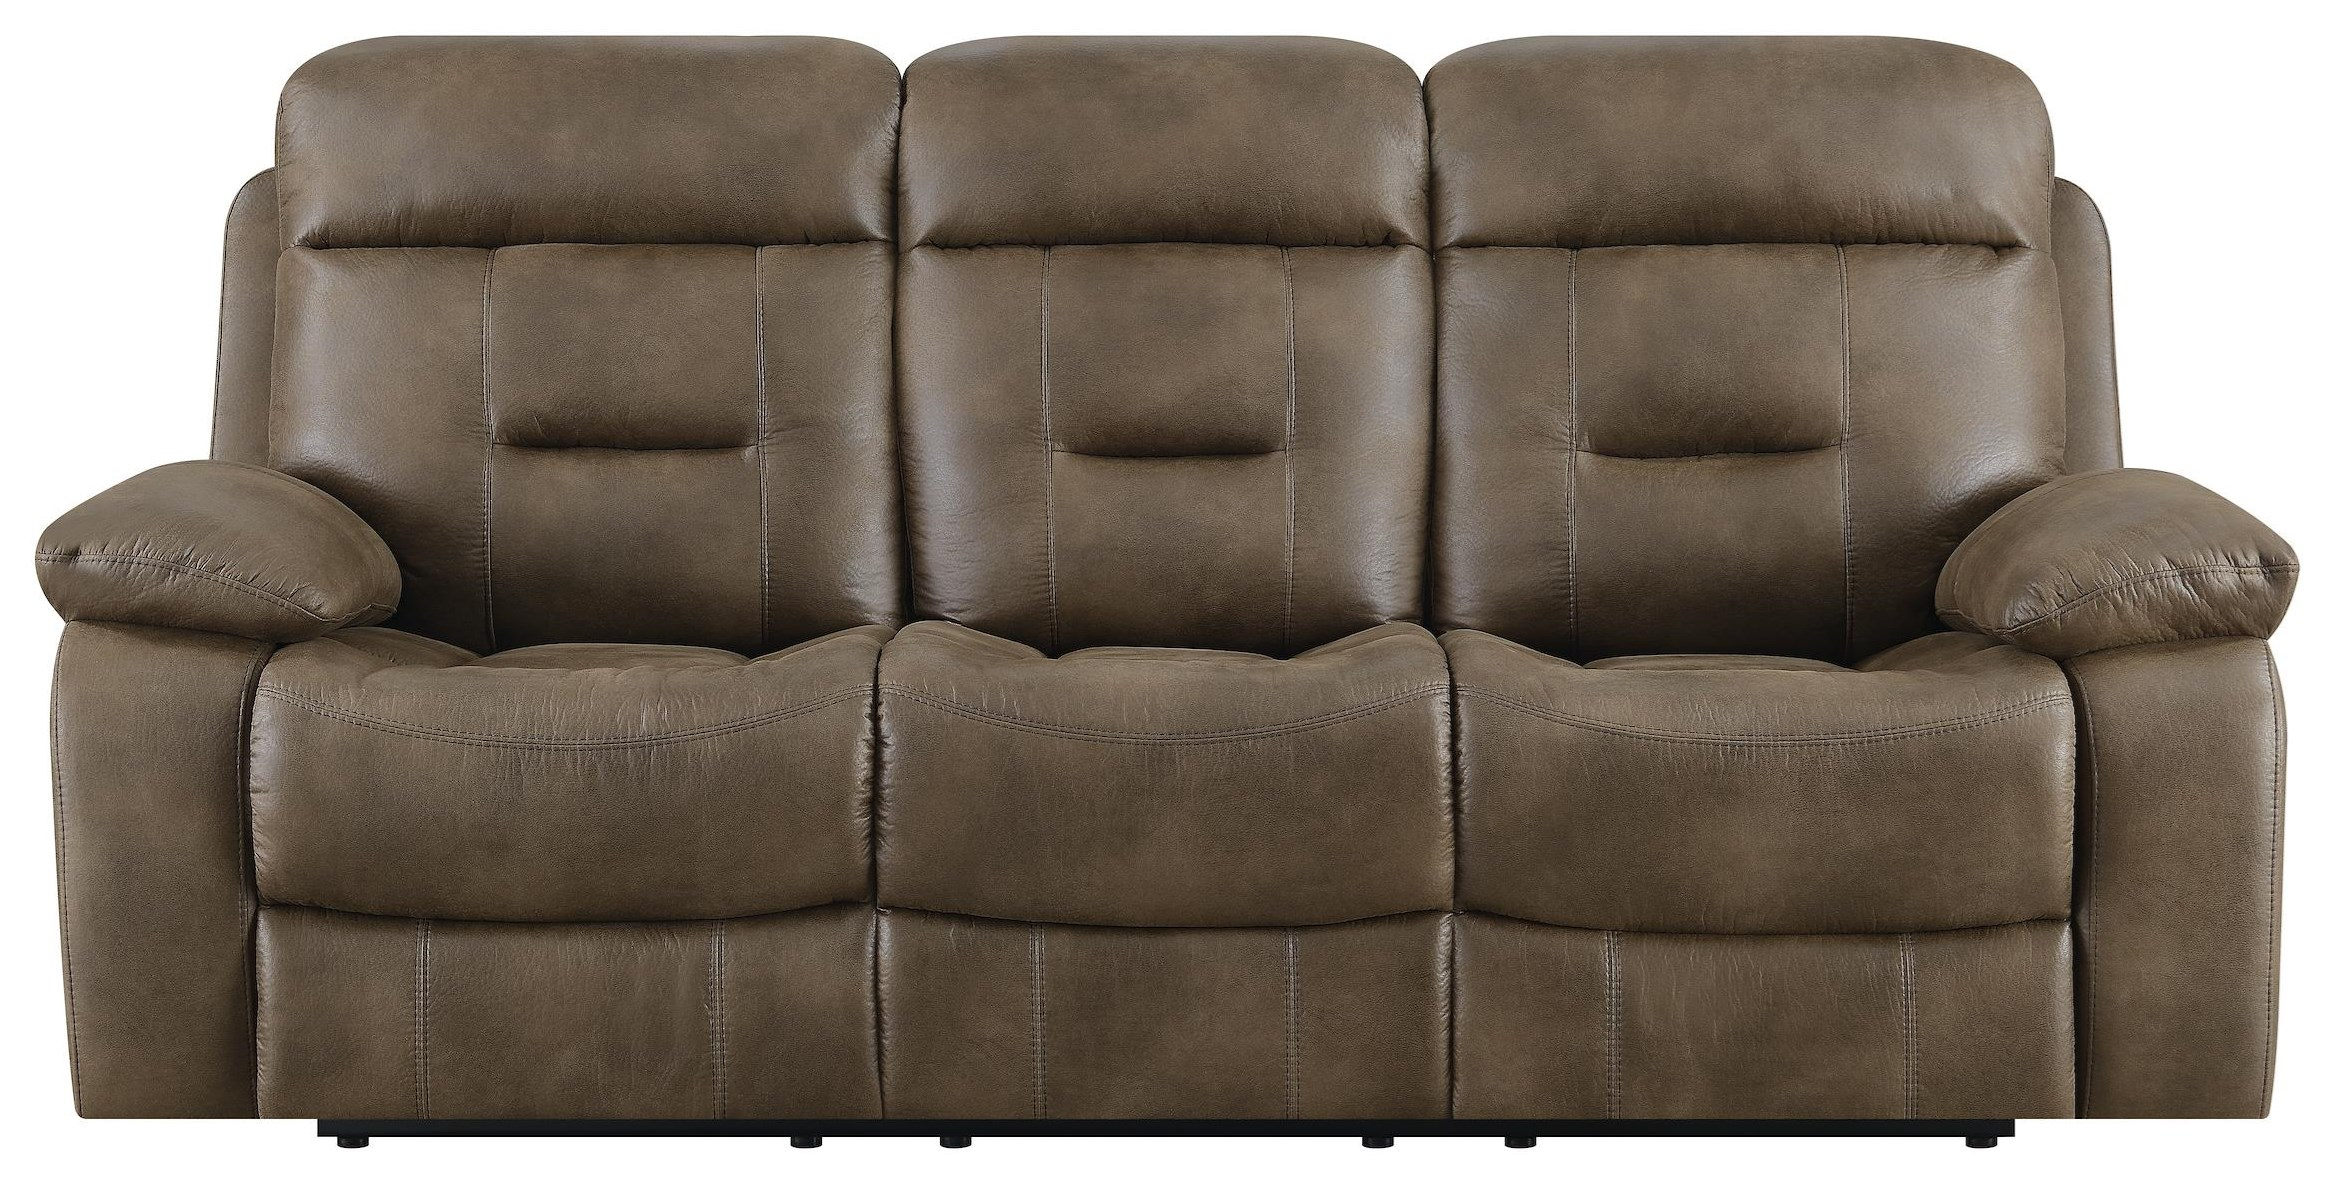 Cano Reclining Sofa by Klaussner International at Beck's Furniture